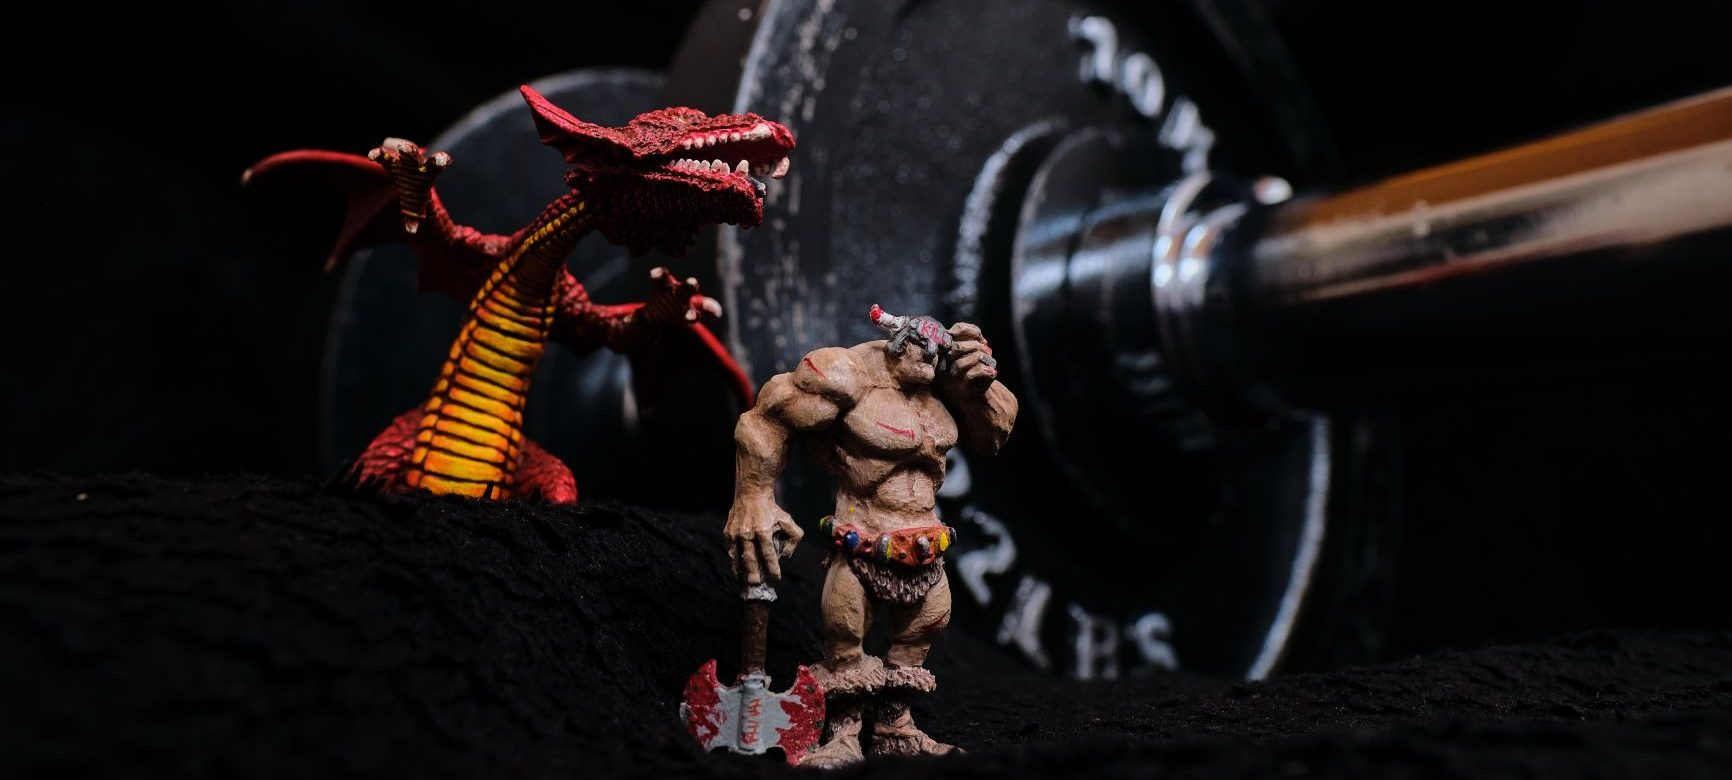 Dumbbells & Dragons